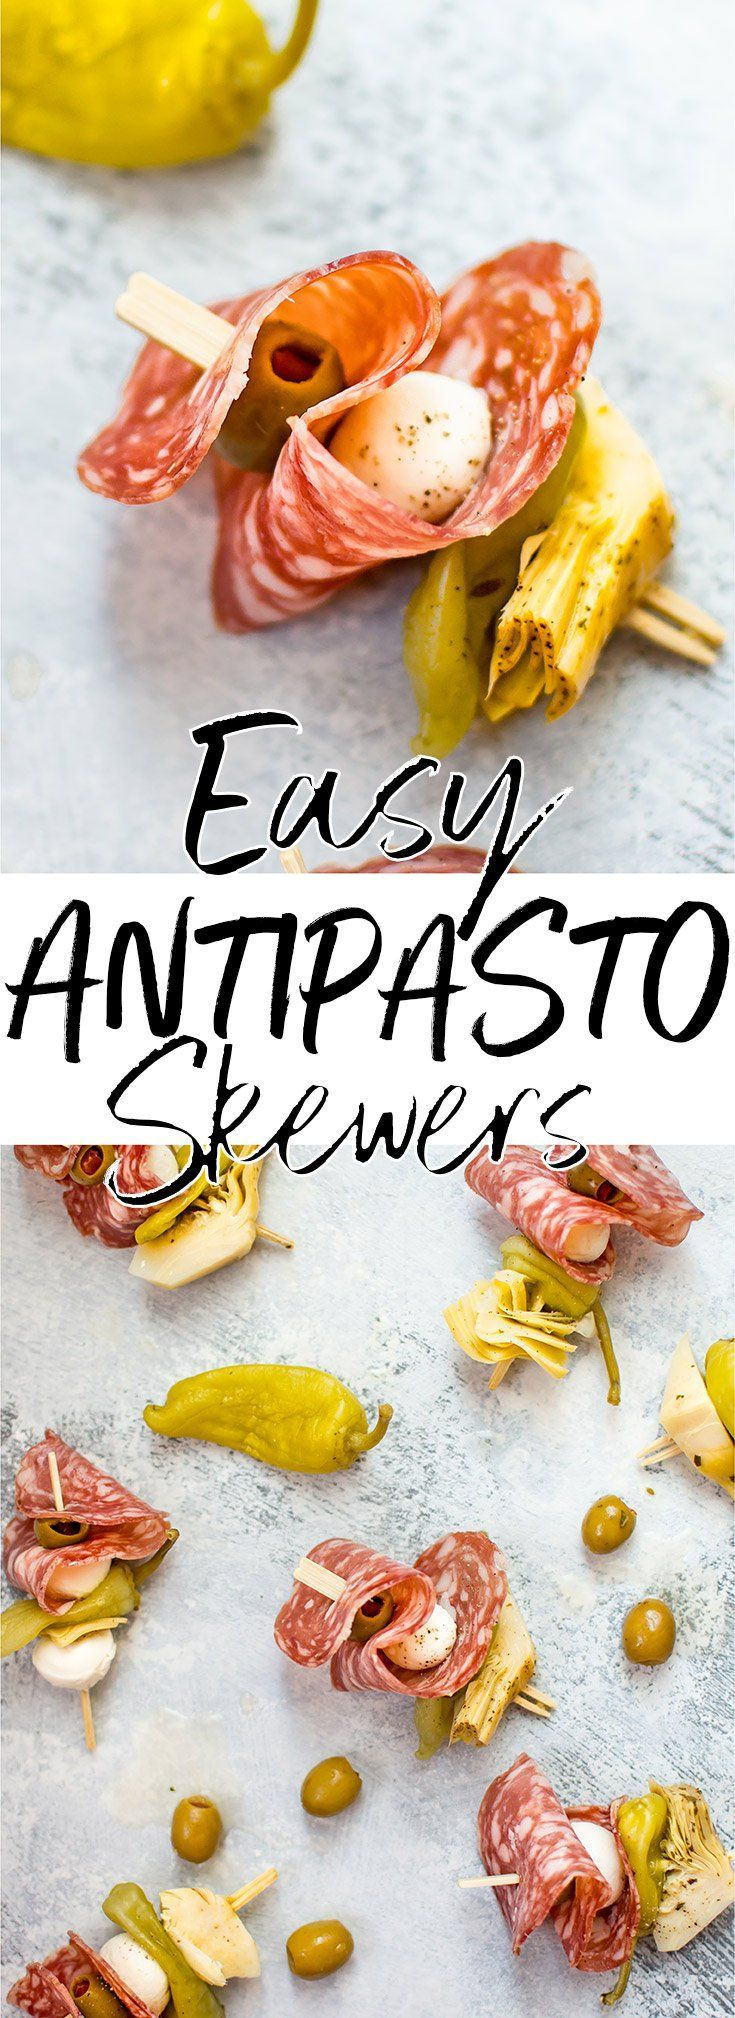 These easy antipasto skewers are fresh, colorful, delicious, and come together fast. They're also simple to store and transport without much fuss. #appetizer